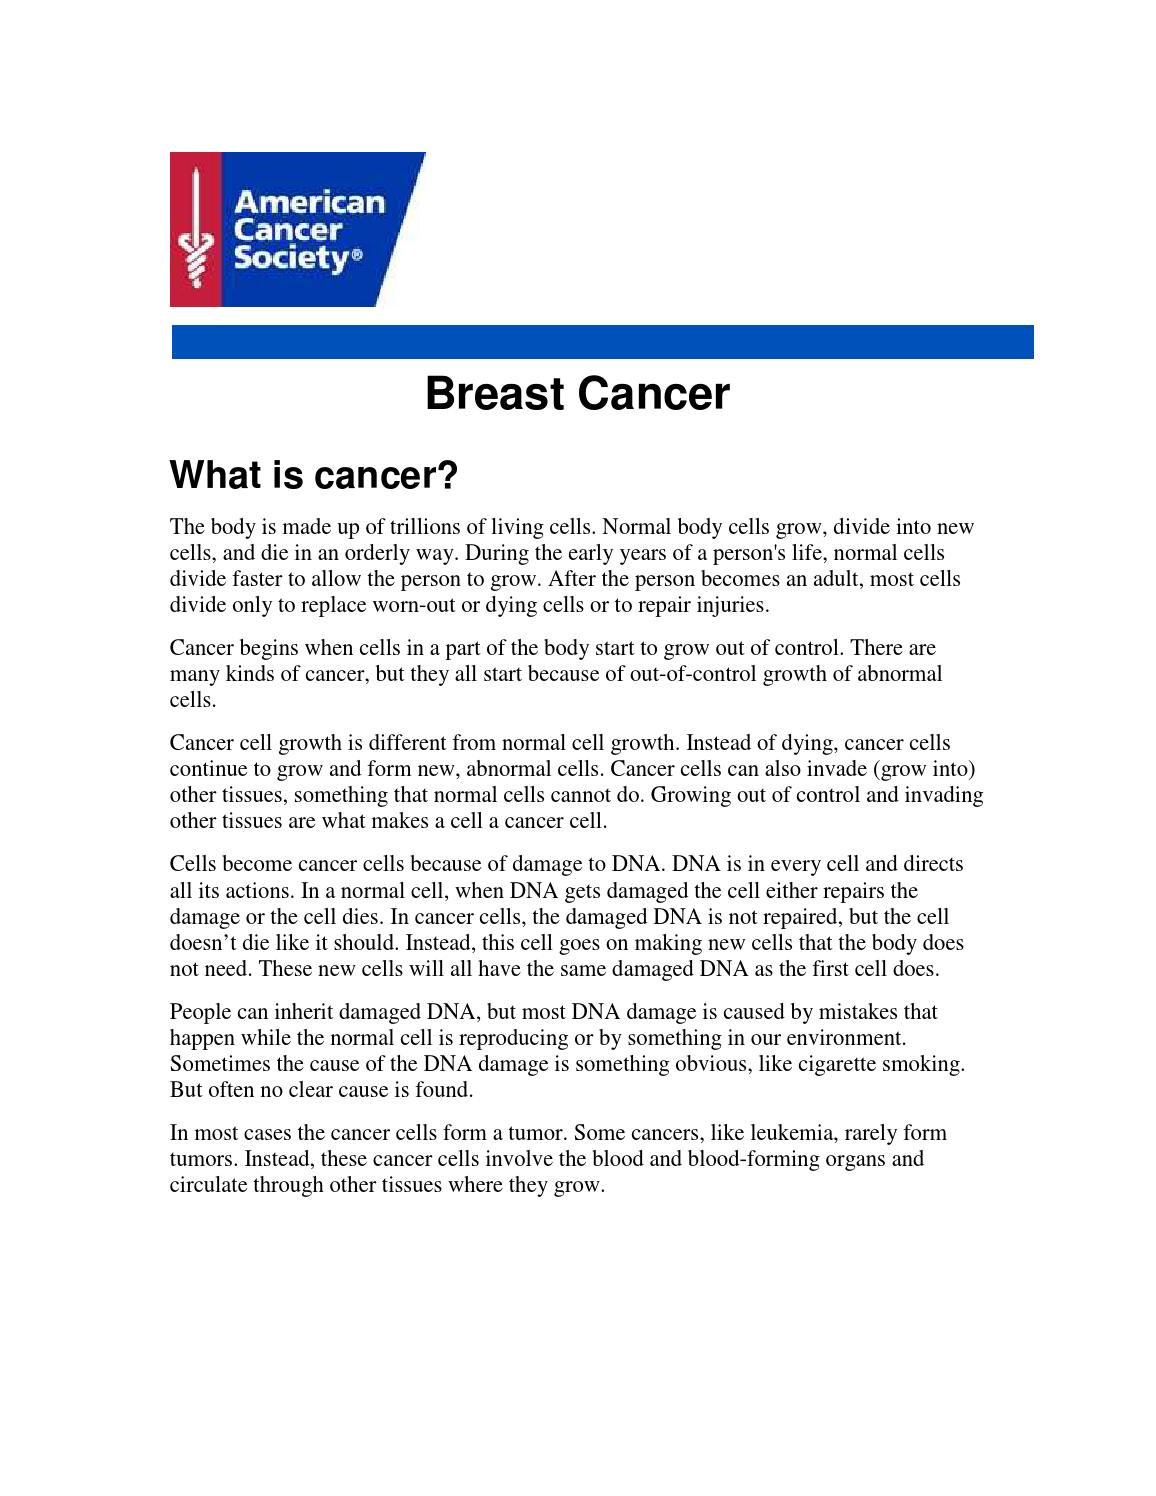 Avastins Breast Cancer Effect Modest At Best